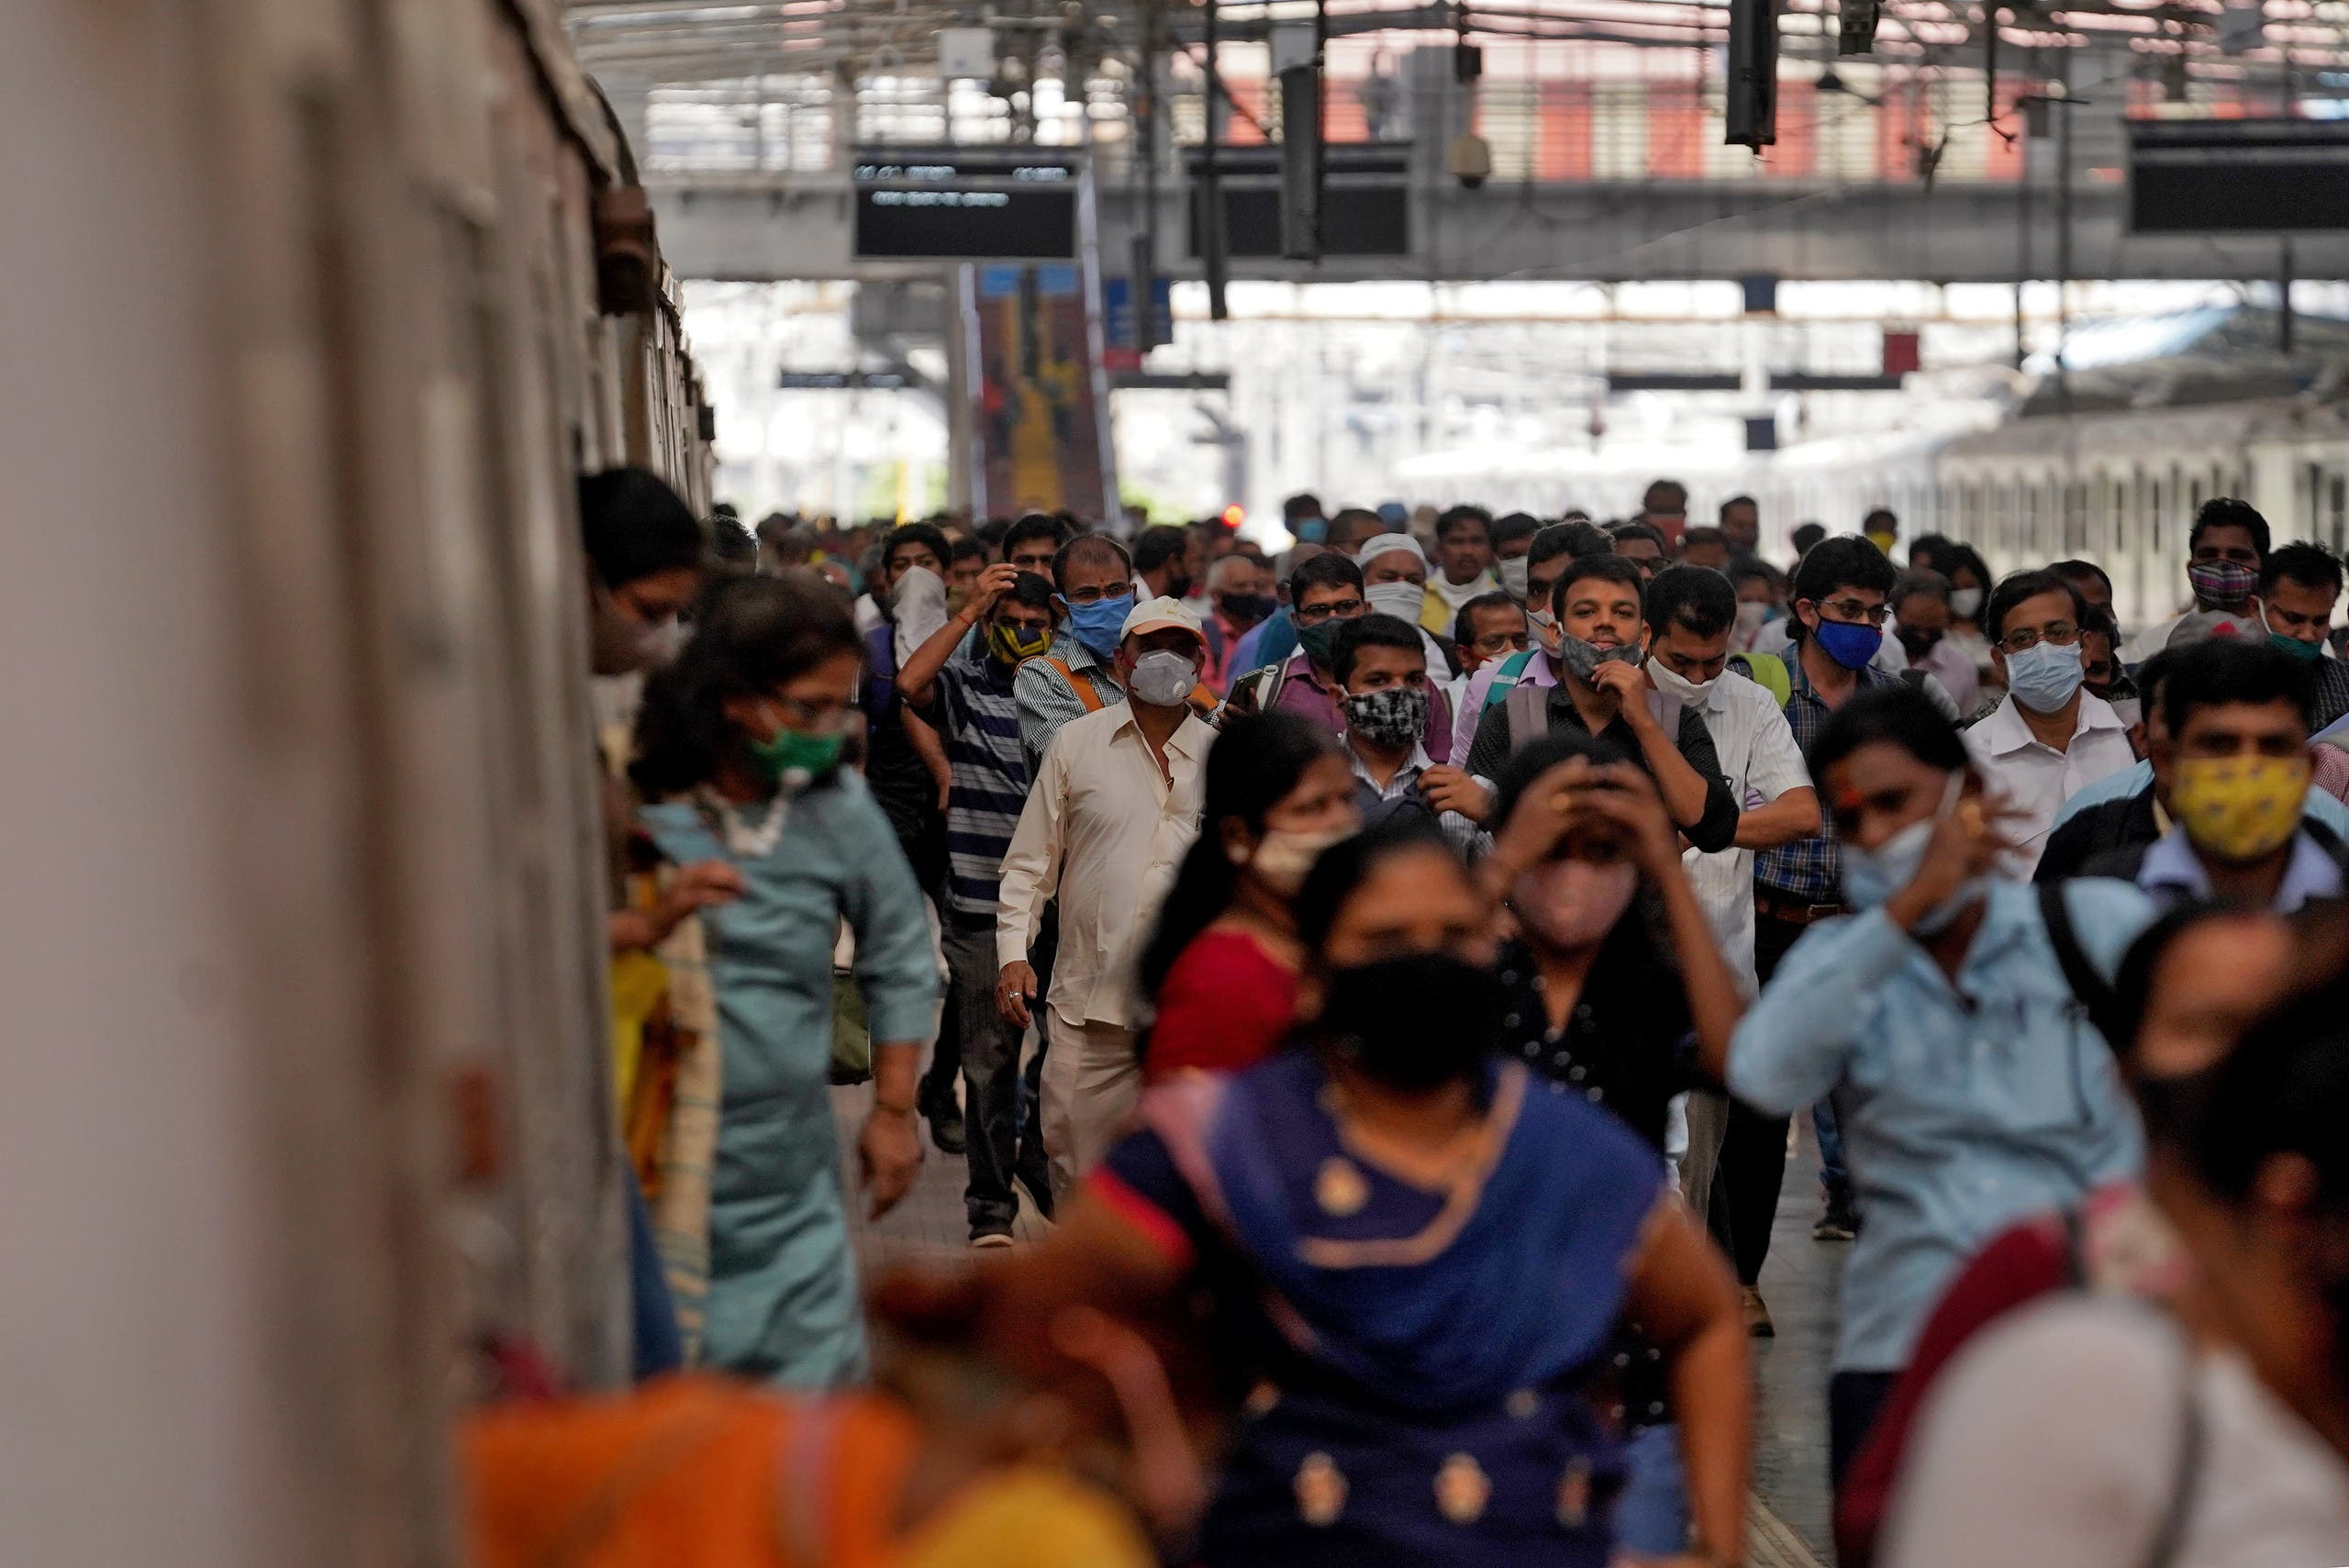 People covering their faces with protective masks disembark a suburban train after authorities resumed the train services for all commuters after it was shut down to prevent the spread of the coronavirus disease (COVID-19), at a railway station in Mumbai, India, February 1, 2021. REUTERS/Hemanshi Kamani